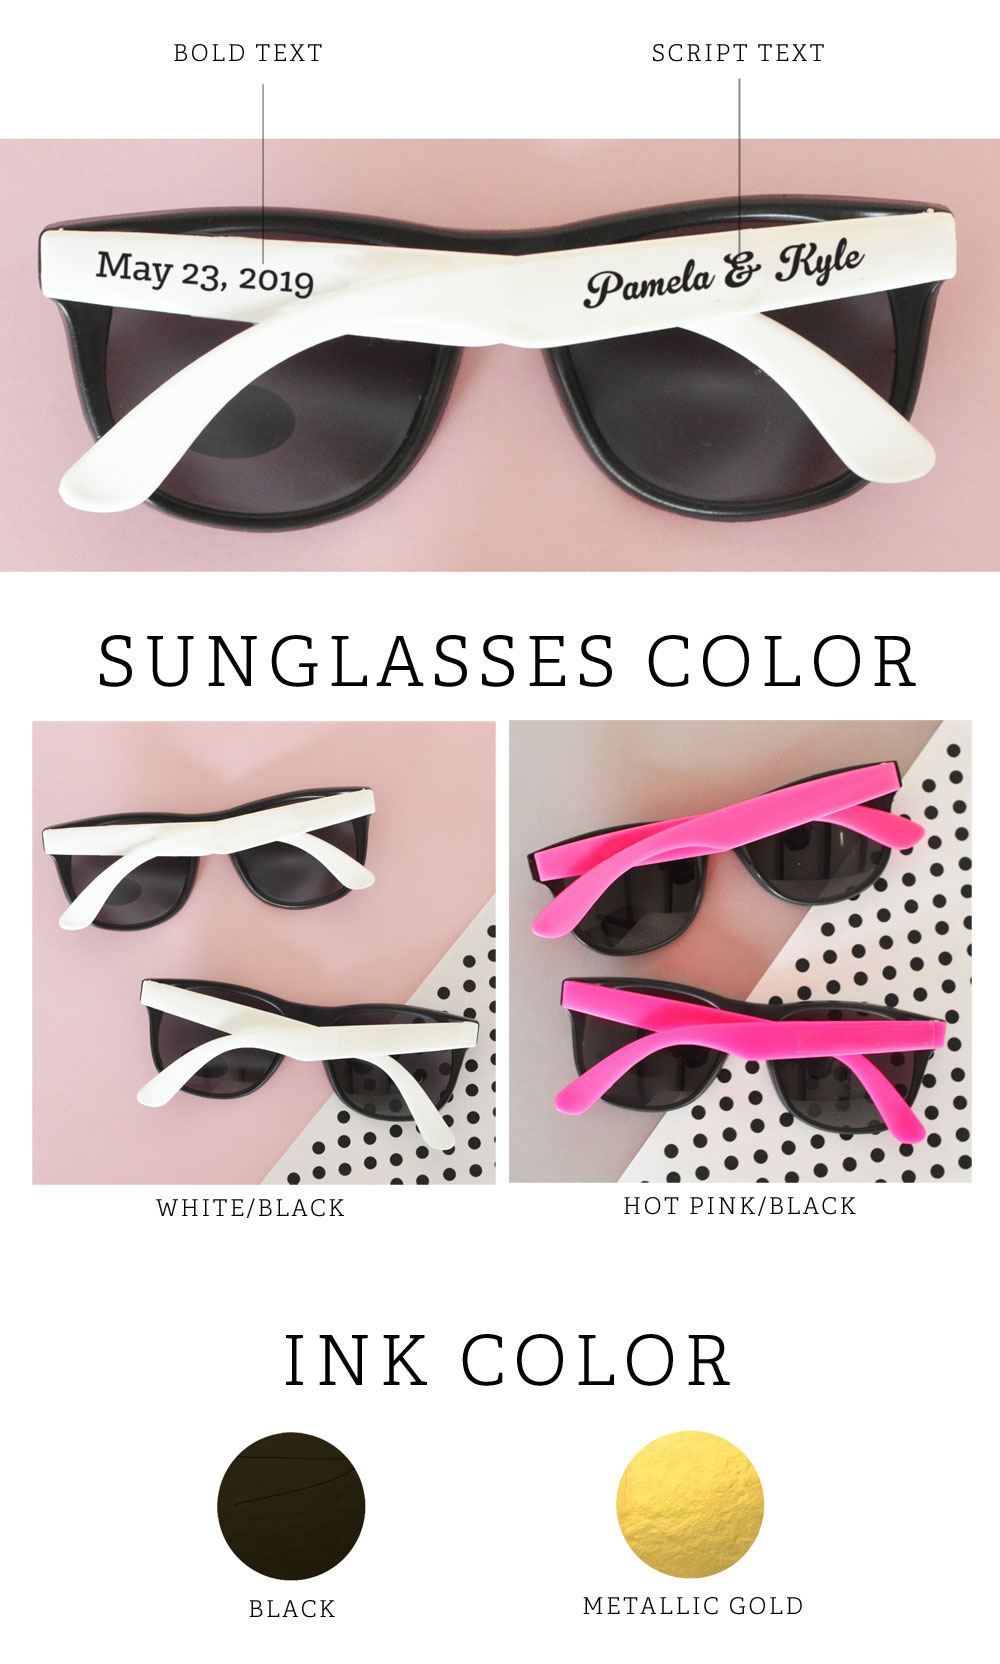 68f0d4fc080 View Sunglasses Color and Ink Color Options